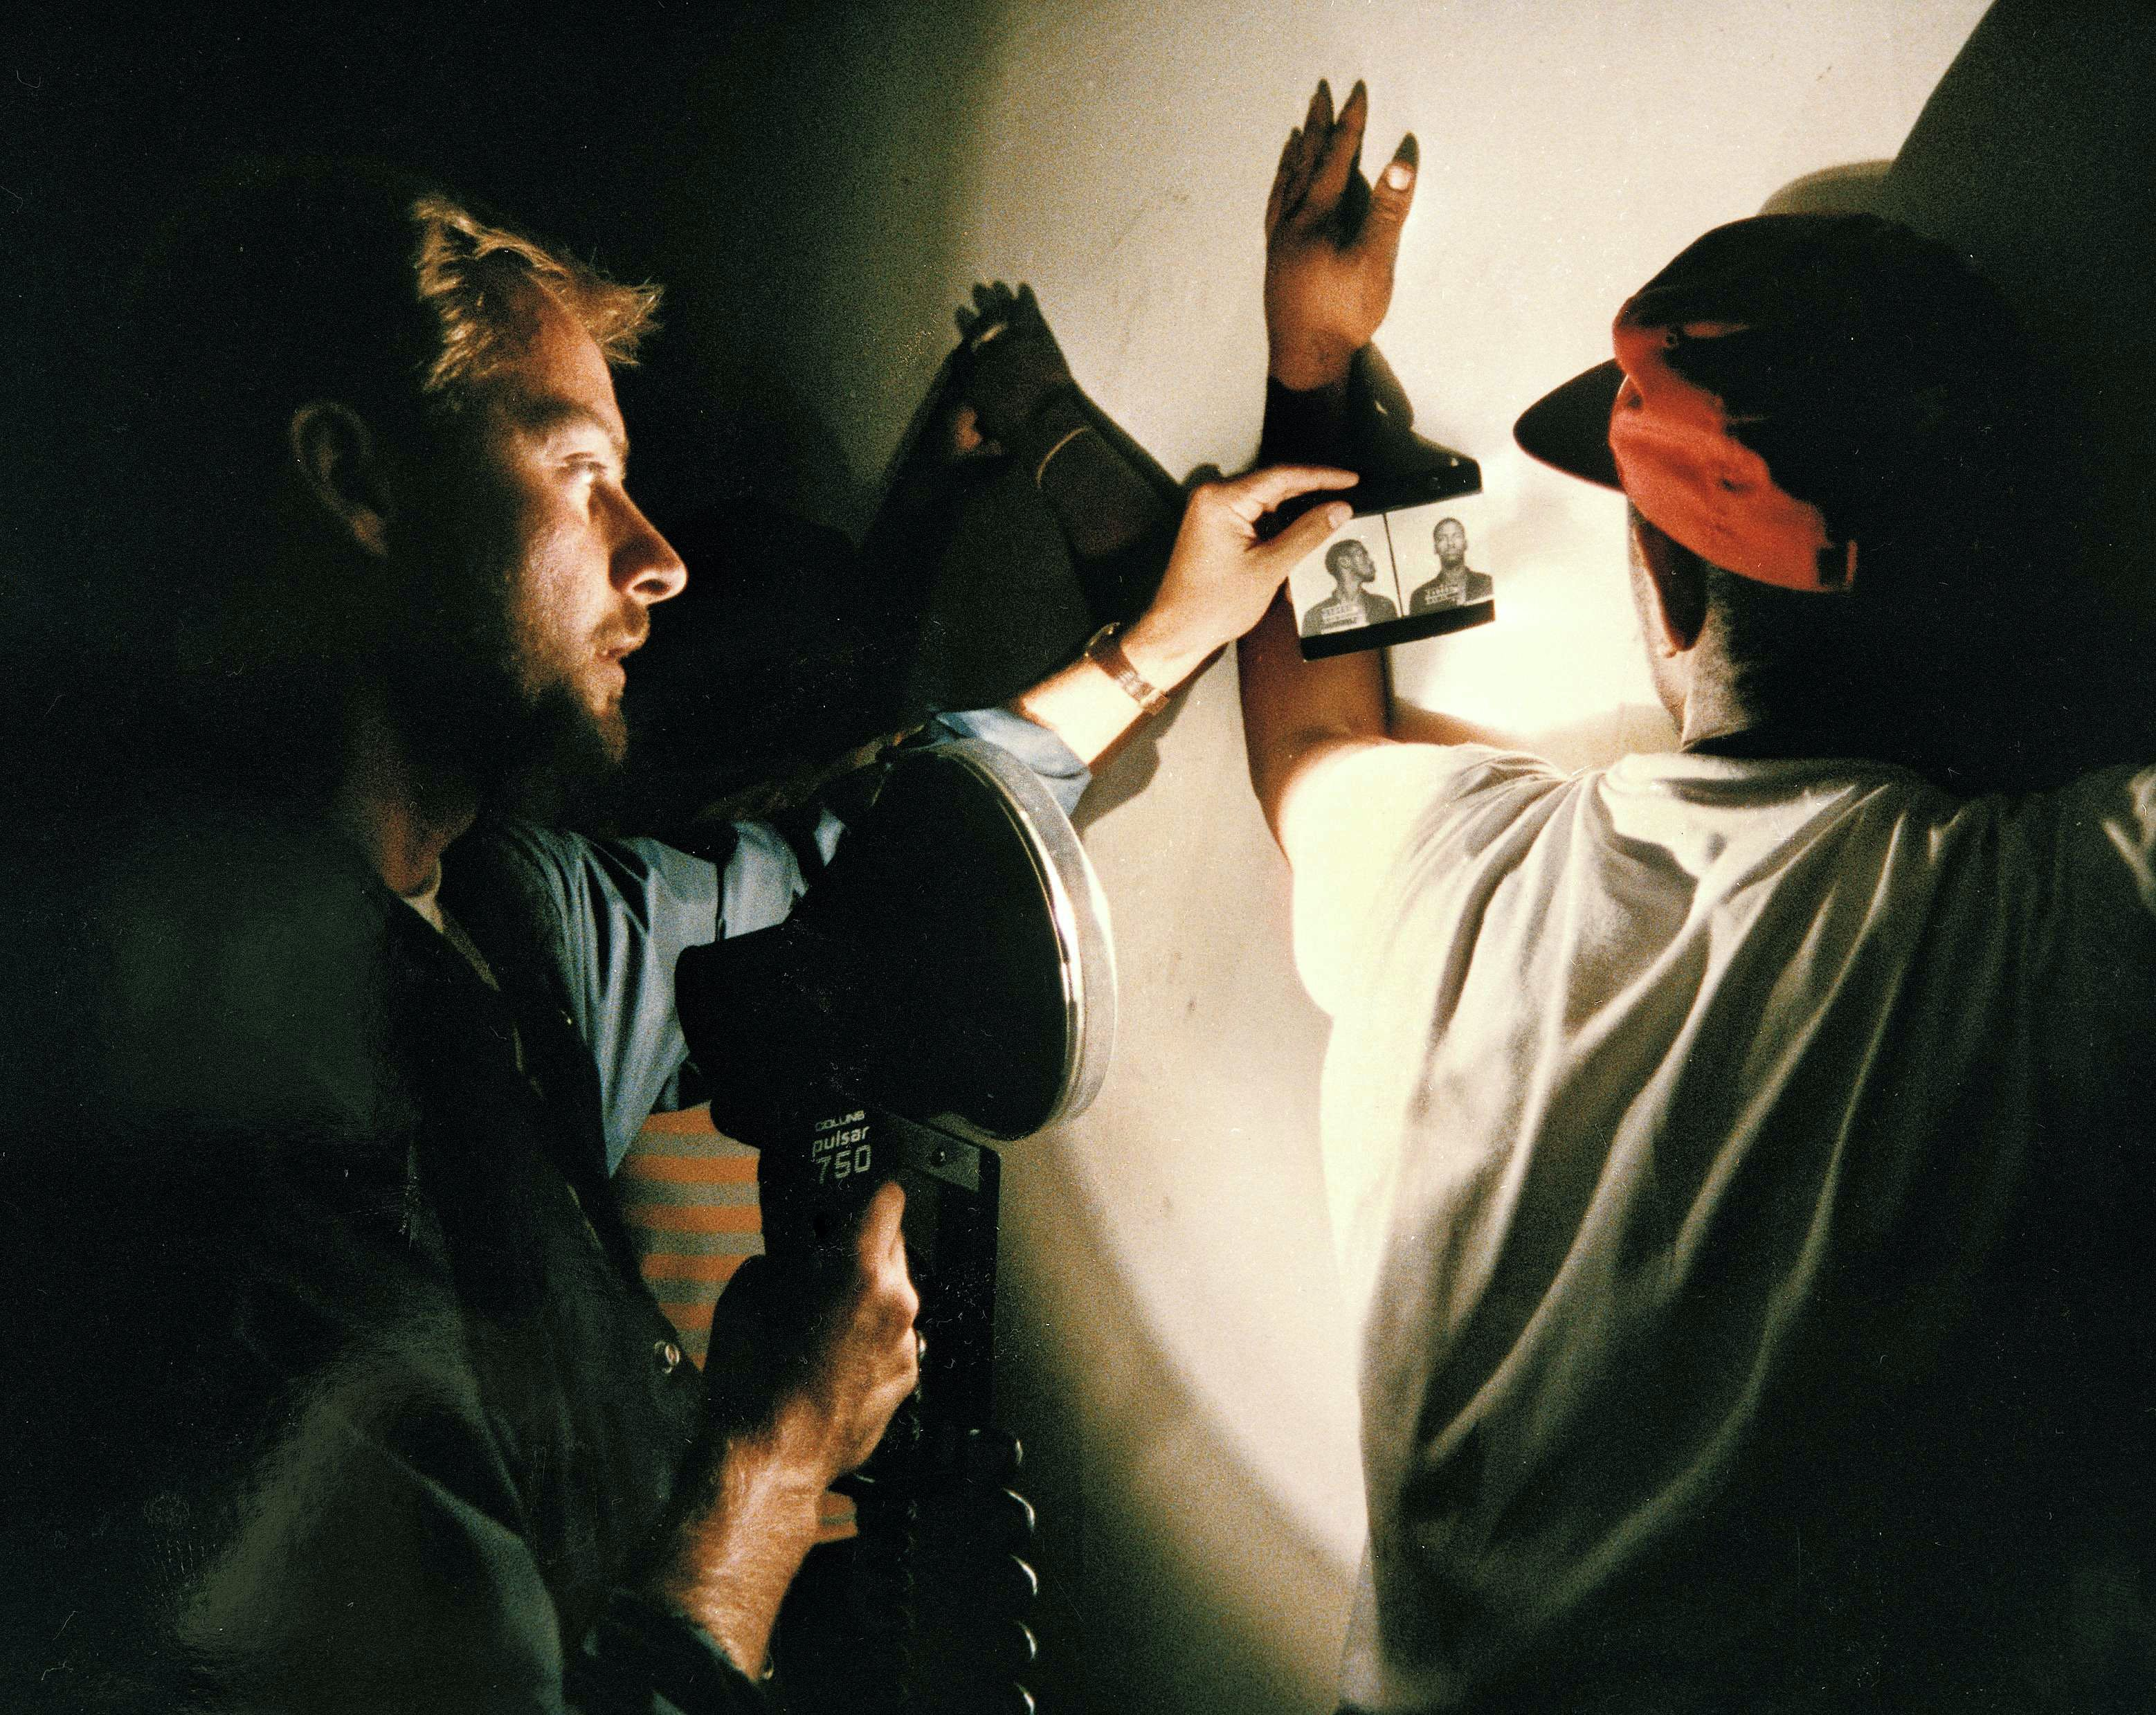 A U.S. marshal, left, looking for a suspect, shows a mug shot to a man found allegedly using drugs in a crackhouse, according to police, in Washington, D.C., July 18, 1989. This scene, and many like it, were repeated many times during operation STOP: Street Terror Offender Program. Some 456 fugitives were arrested as a result of the eight-week anti-drug program, which is part of President George H.W. Bush's War on Drugs. (AP Photo/J. Scott Applewhite)